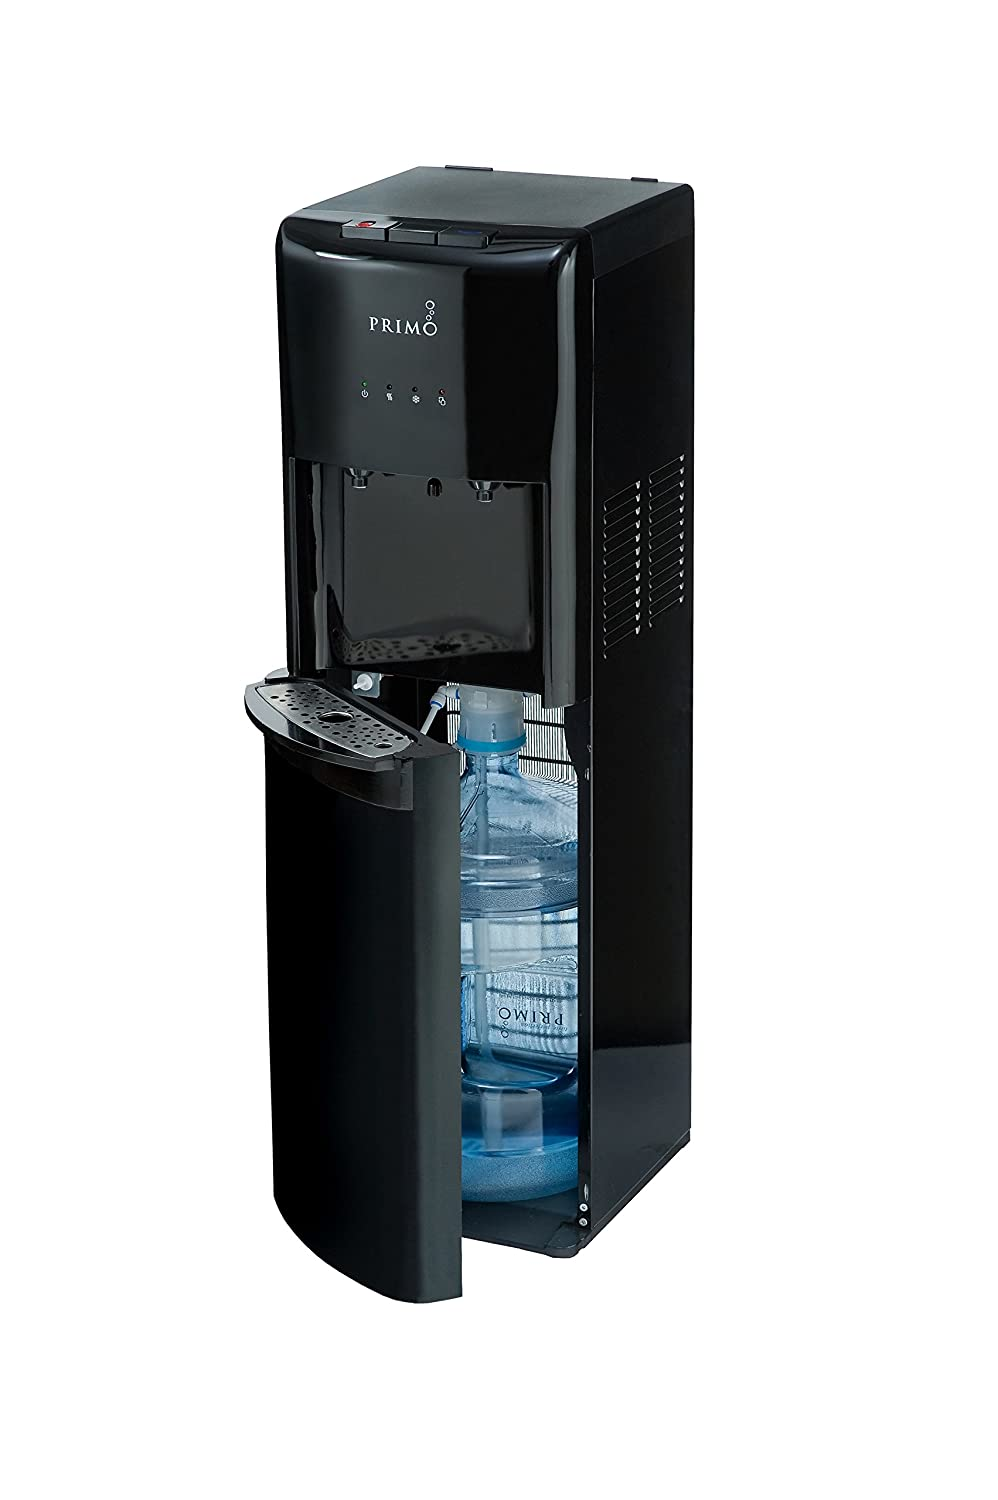 Primo Bottom Loading Water Cooler Review